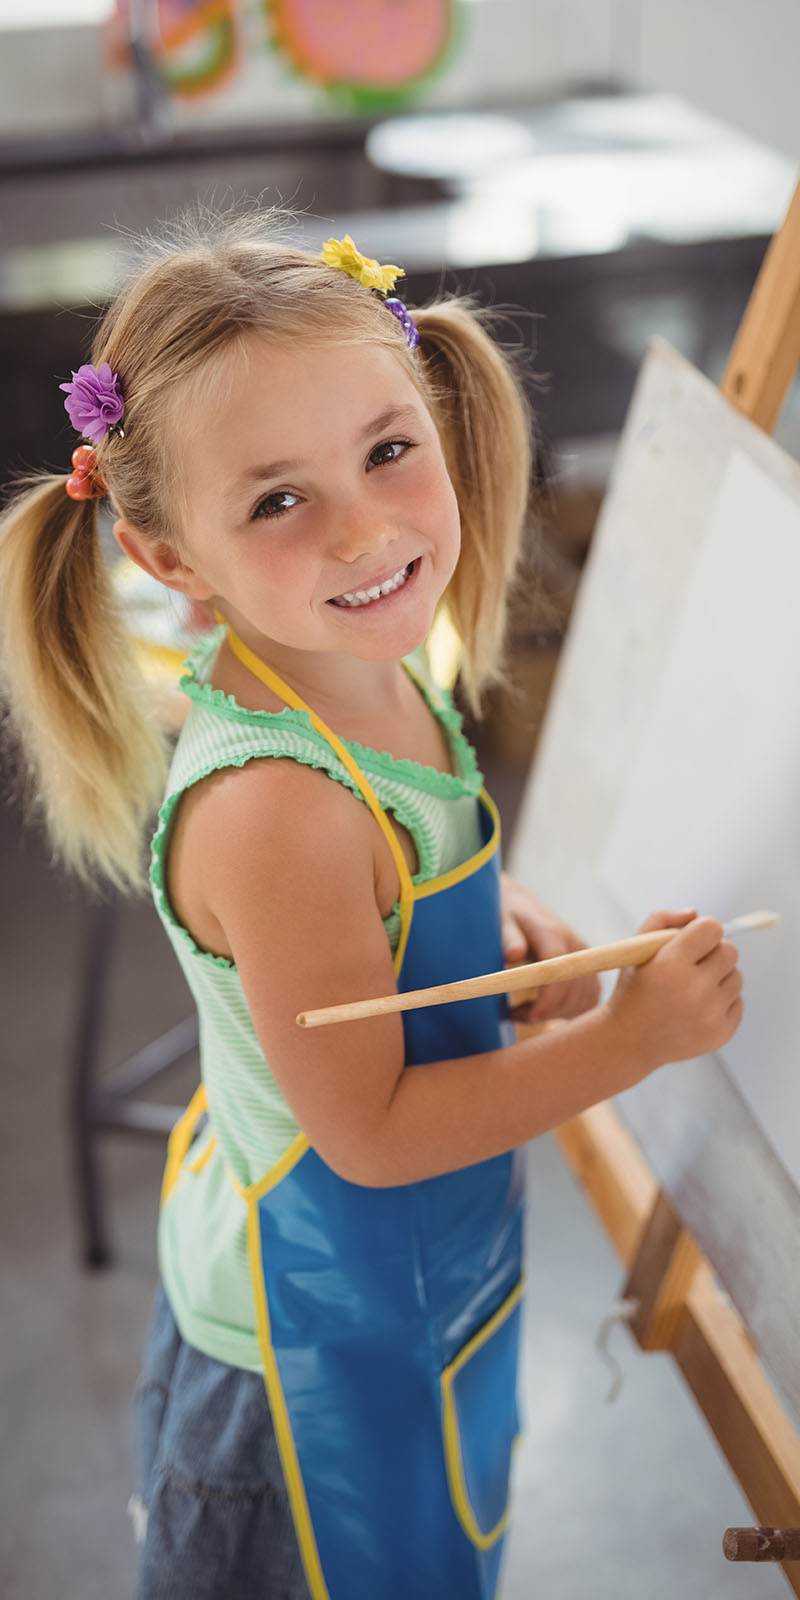 Image contains a little girl with pony tails painting on a canvas while smiling at the camera.